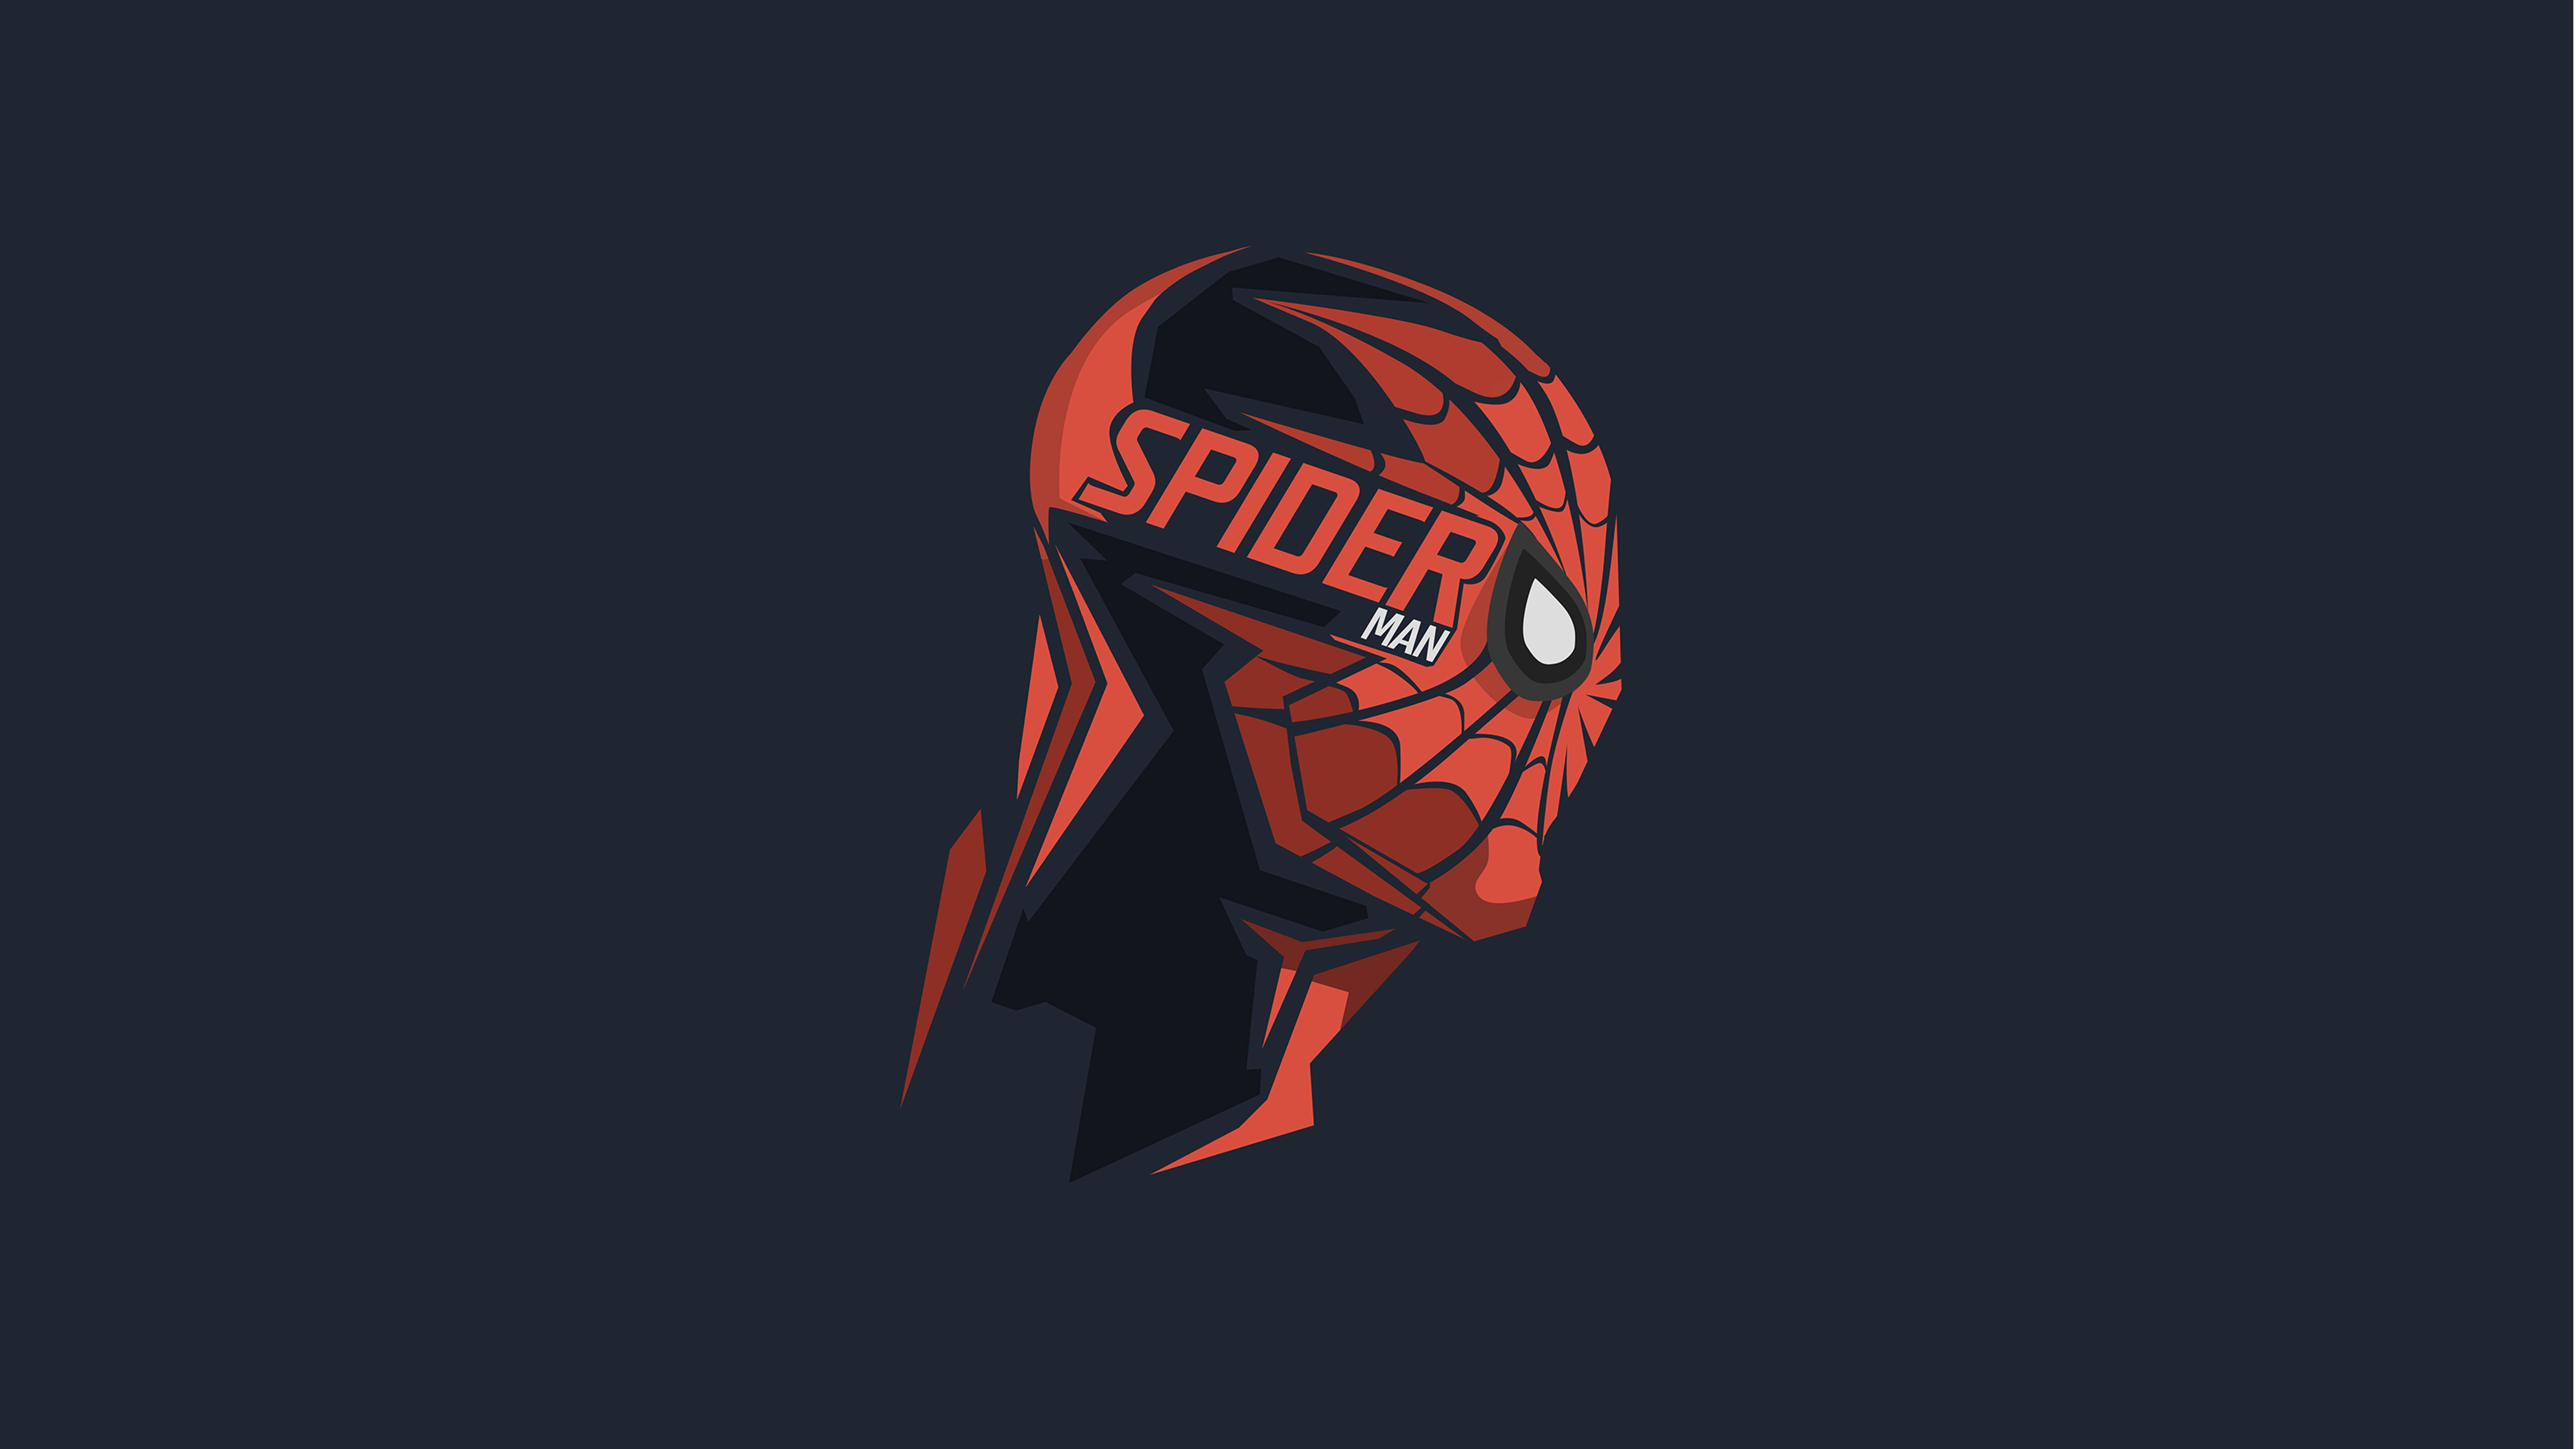 Spider Man Mask Wallpapers Top Free Spider Man Mask Backgrounds